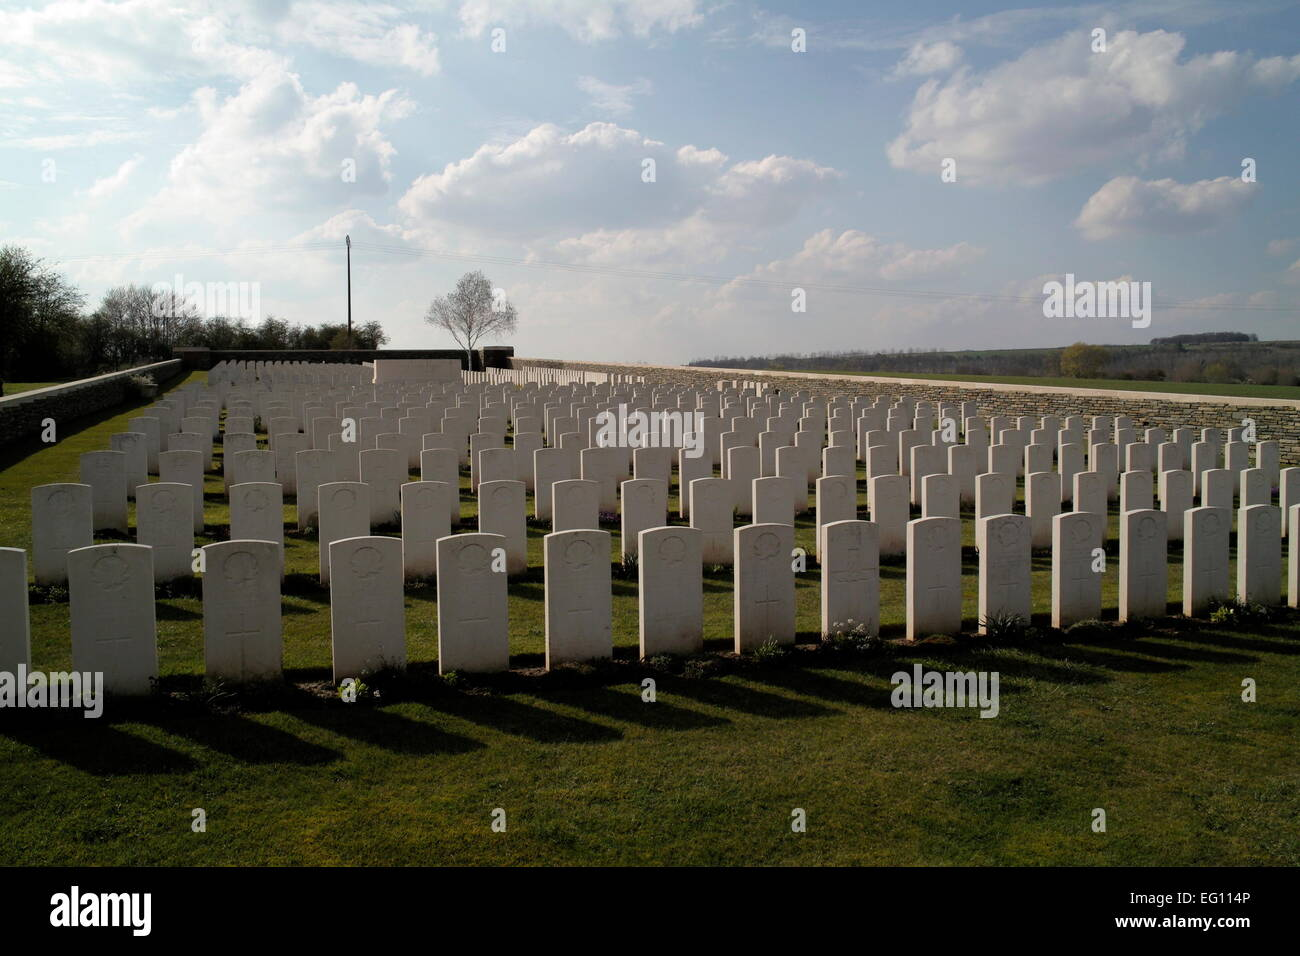 AJAXNETPHOTO. CERISY-GAILLY, SOMME, FRANCE. - WAR GRAVES - CERISY-GAILLY MILITARY CEMETERY, CONTAINS THE GRAVES - Stock Image